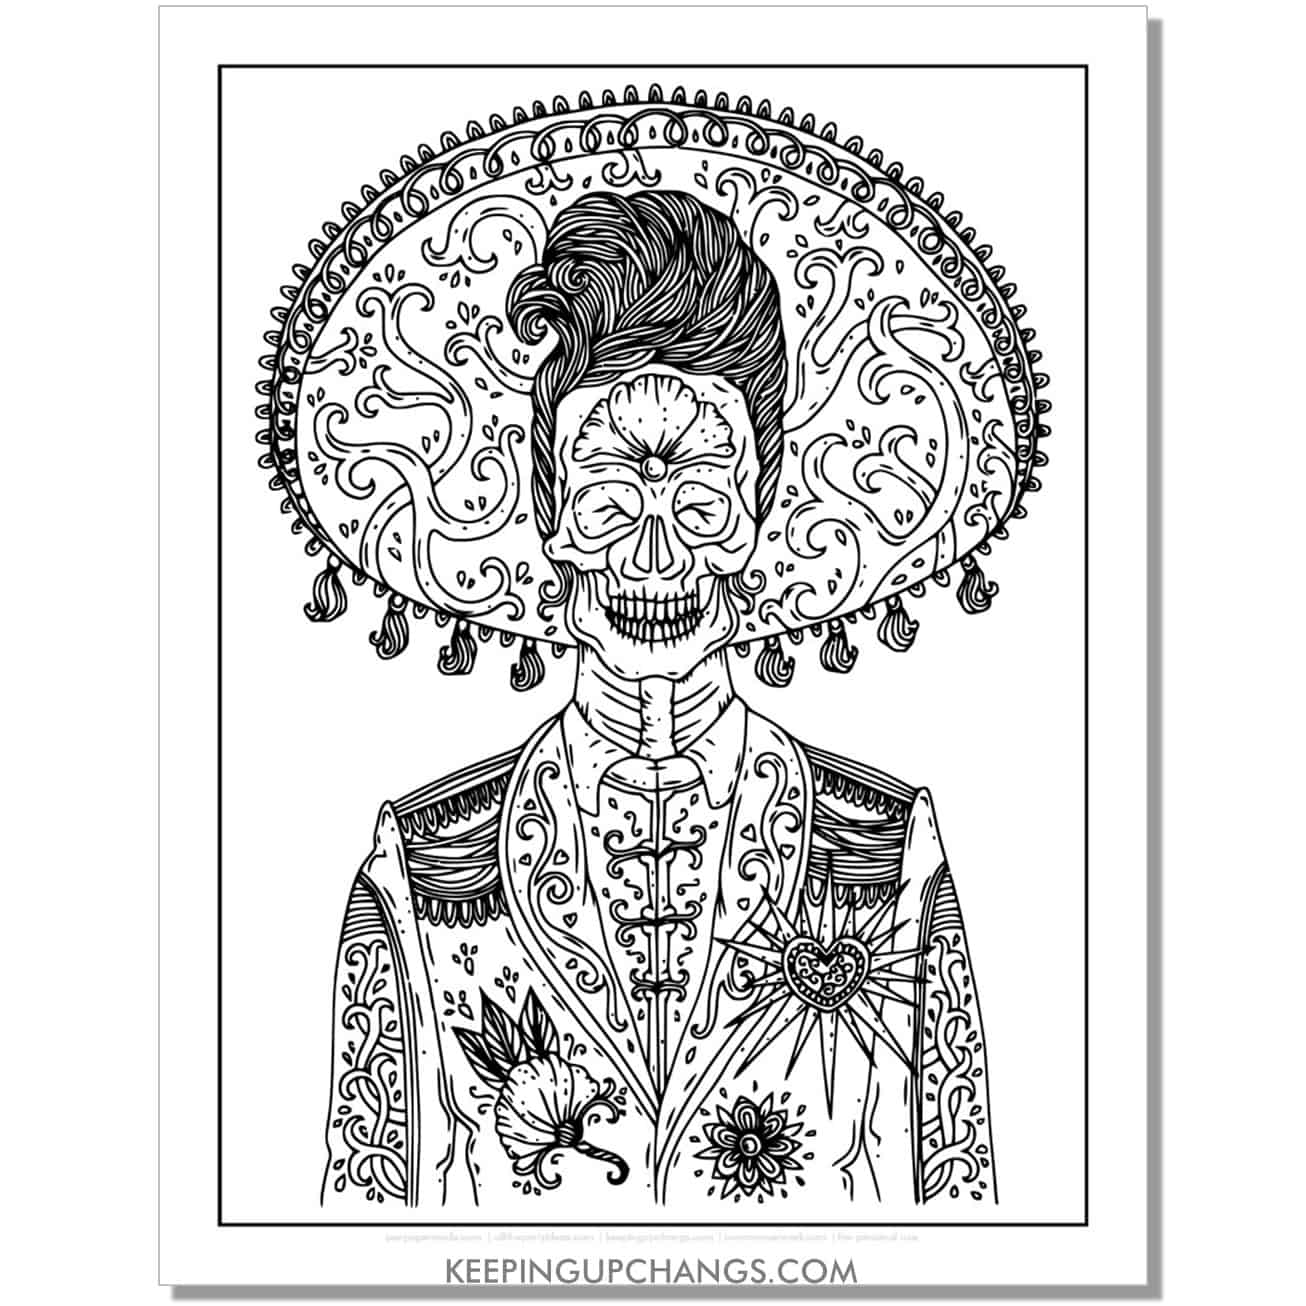 day of the dead male in sombrero coloring page.